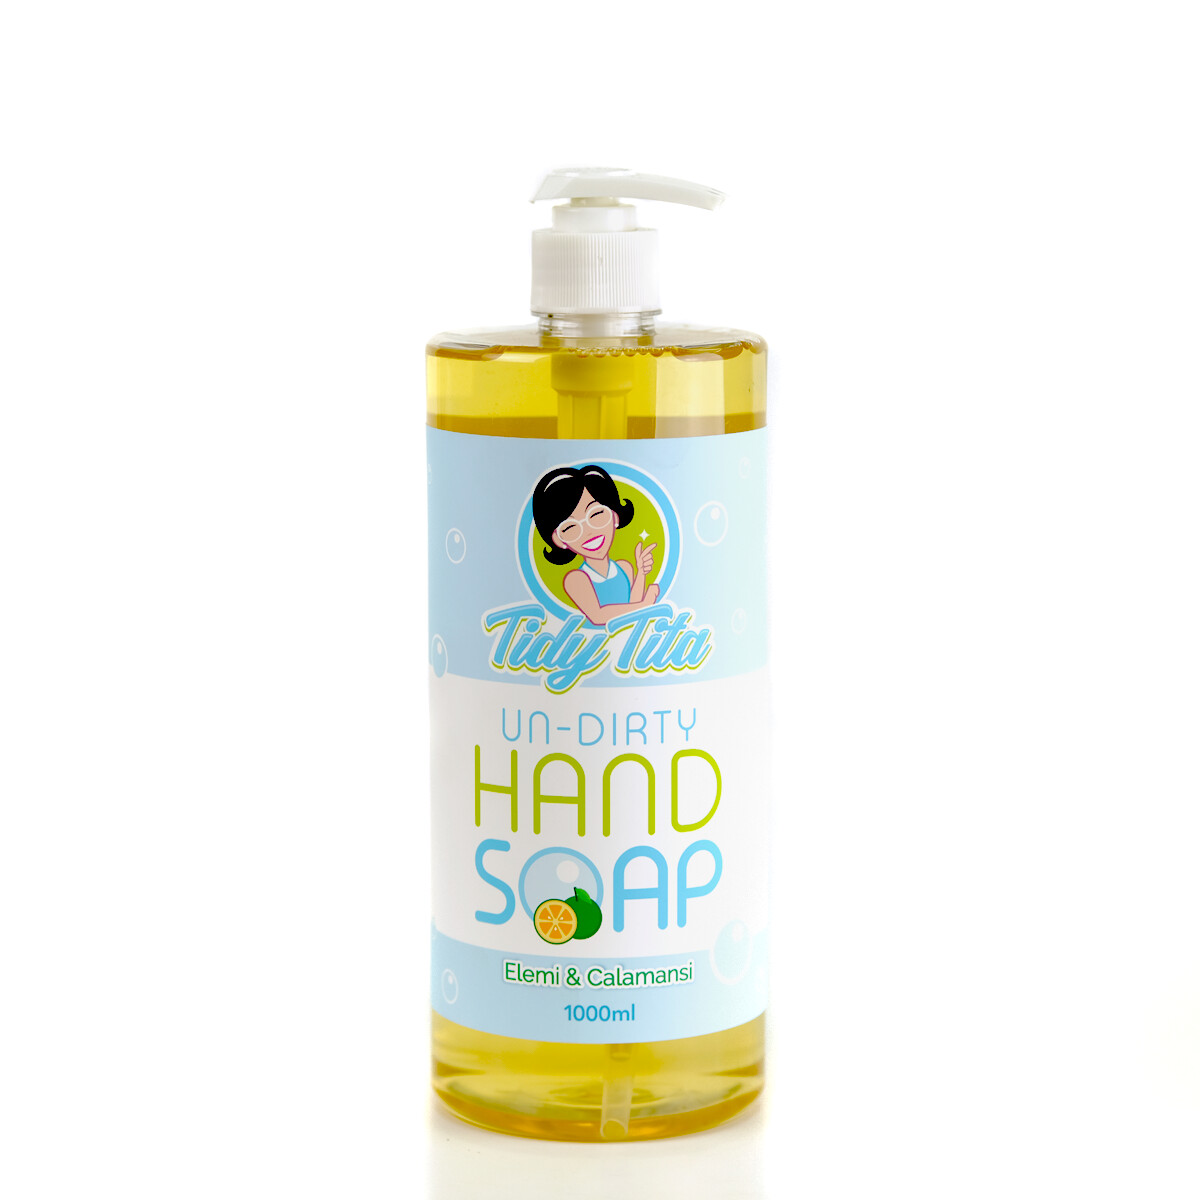 Tidy Tita Un-Dirty Hand Soap